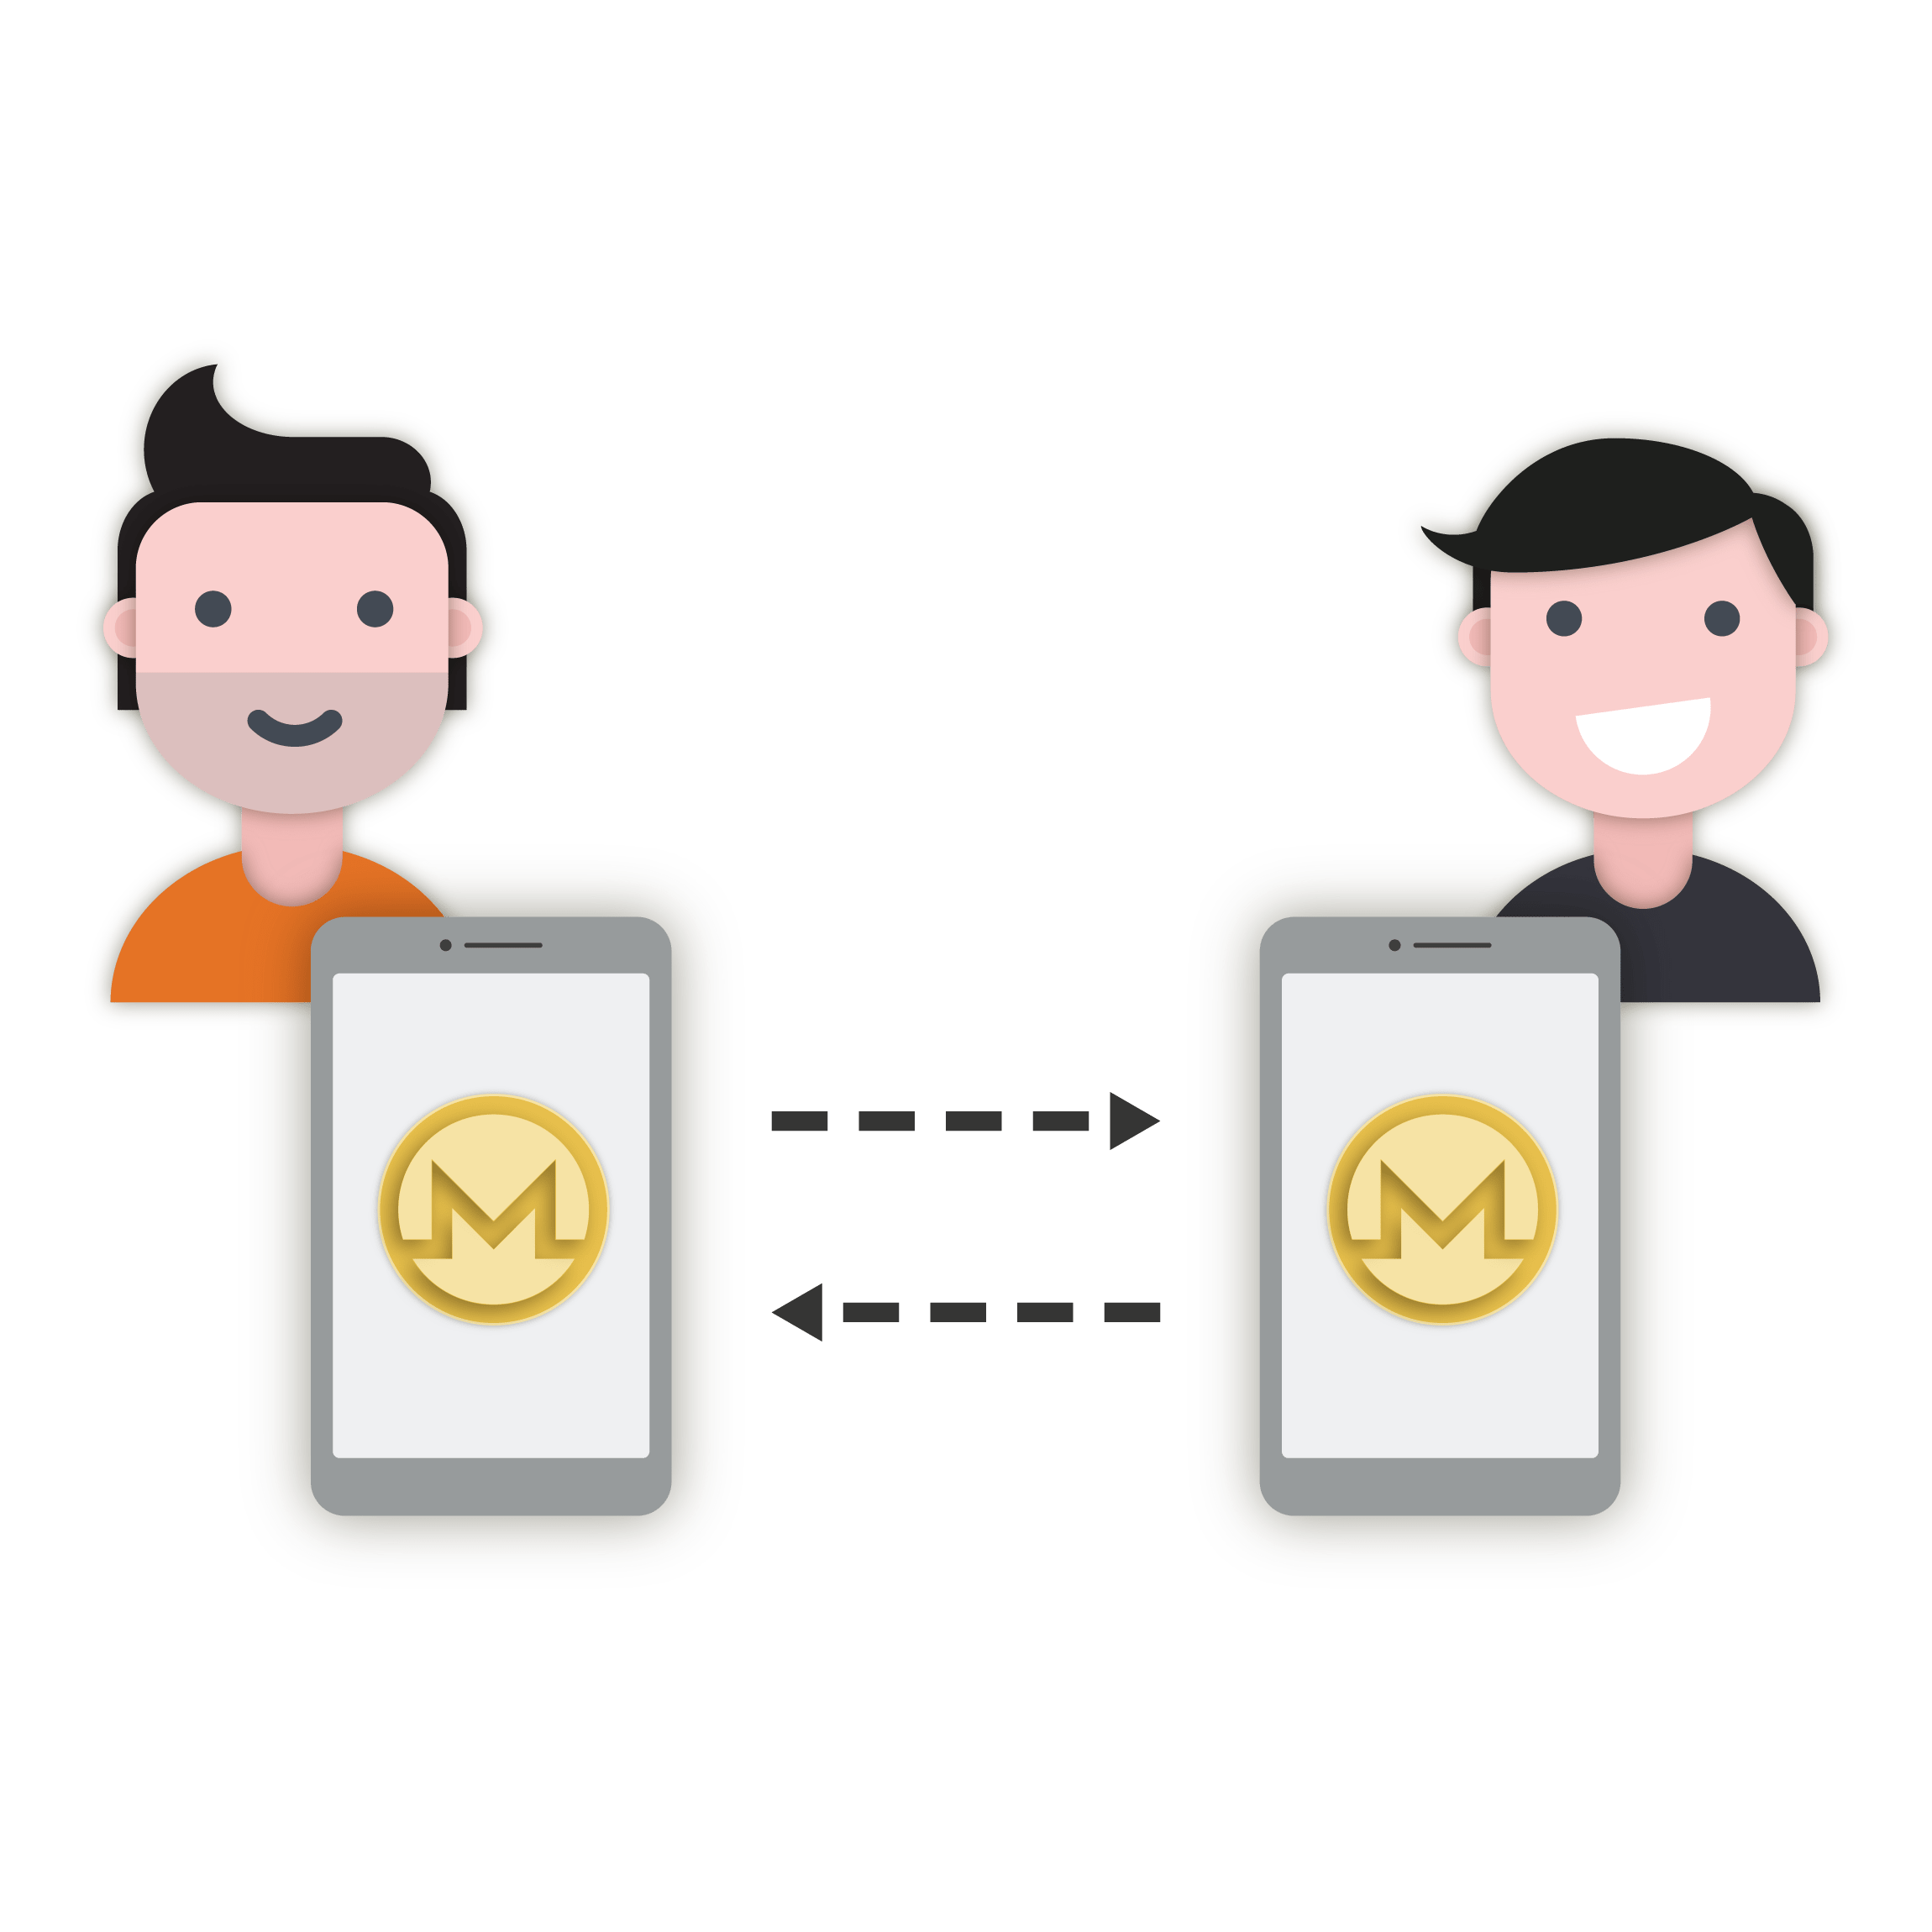 Monero is sent from one person to another.